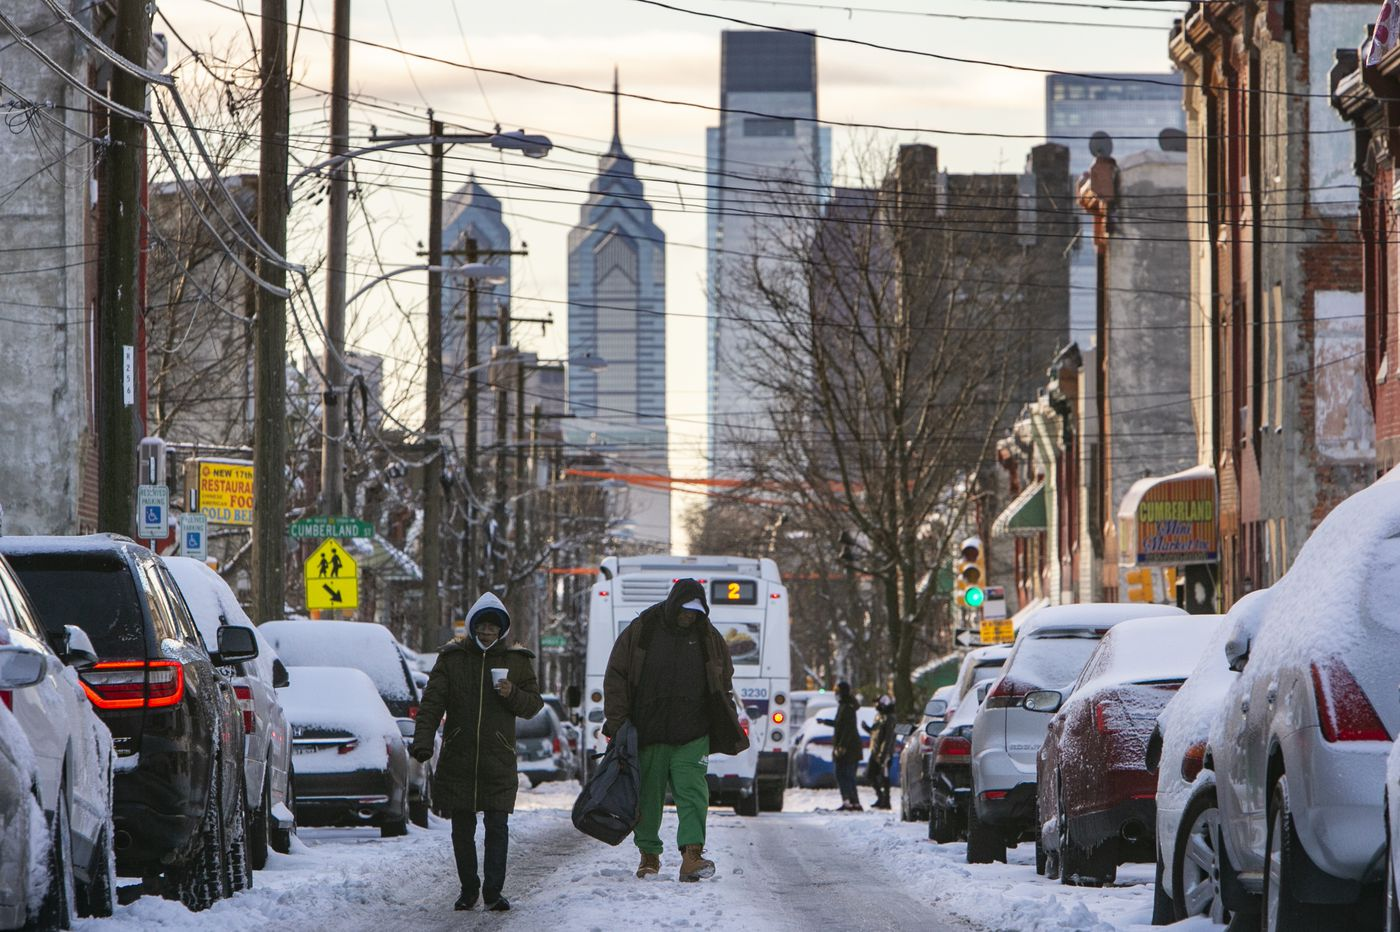 Philly region experiences its first major snowstorm in 1,000 days